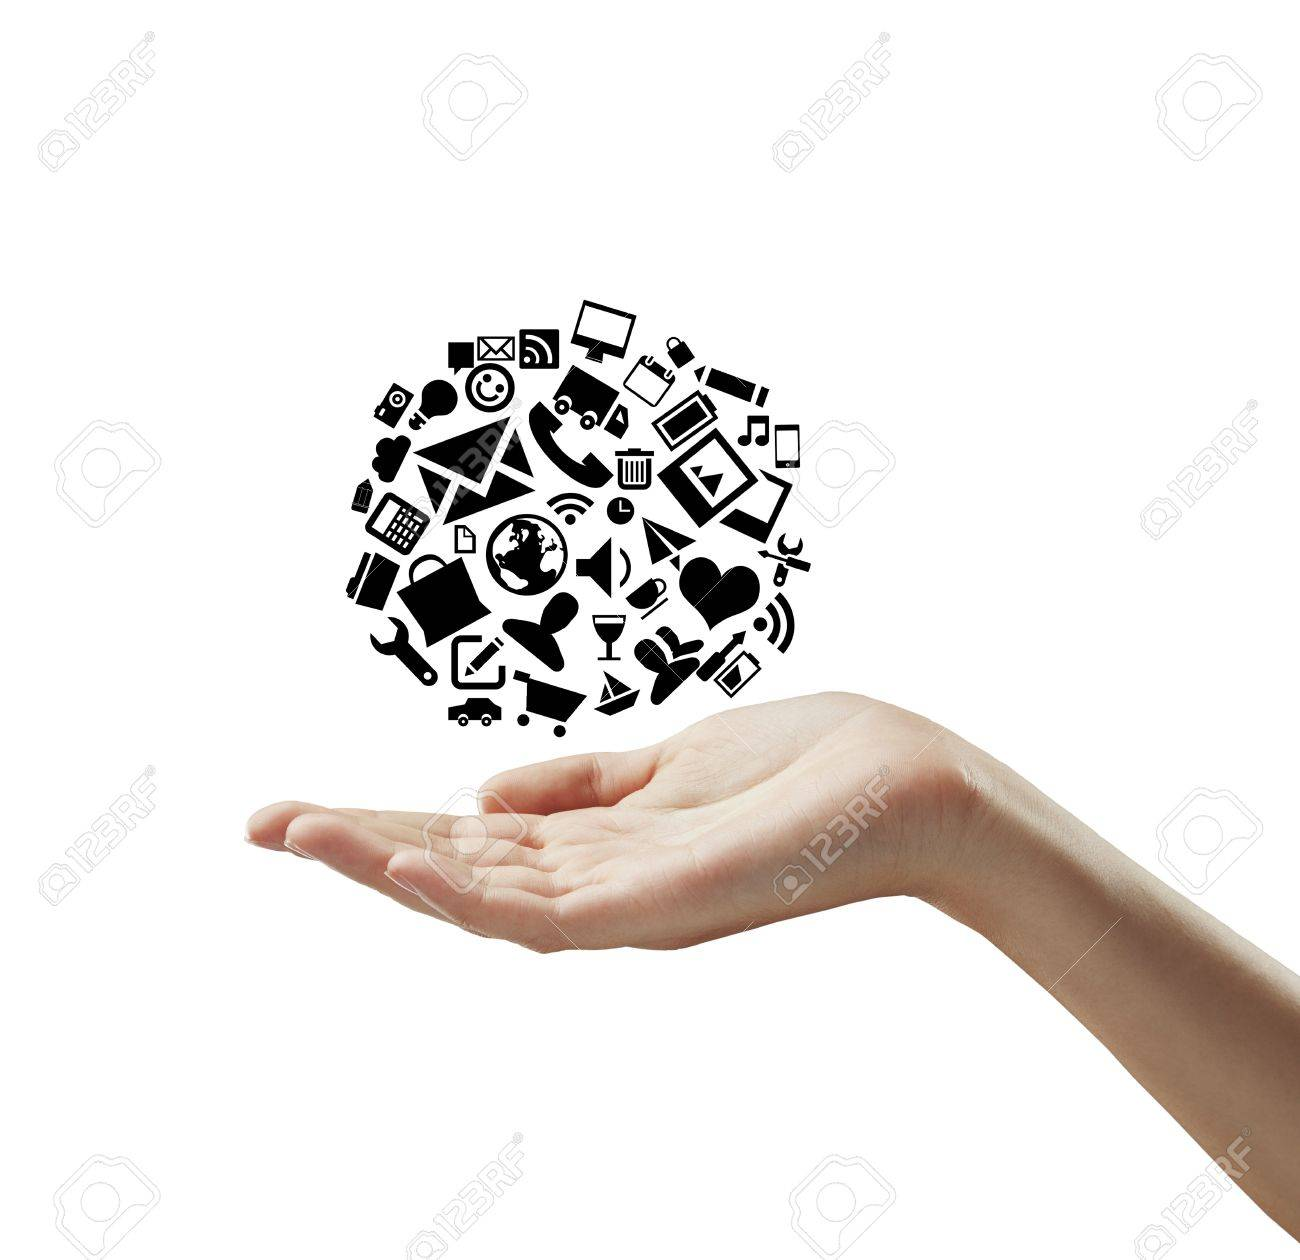 hand holding cloud icons on a white background Stock Photo - 14473338